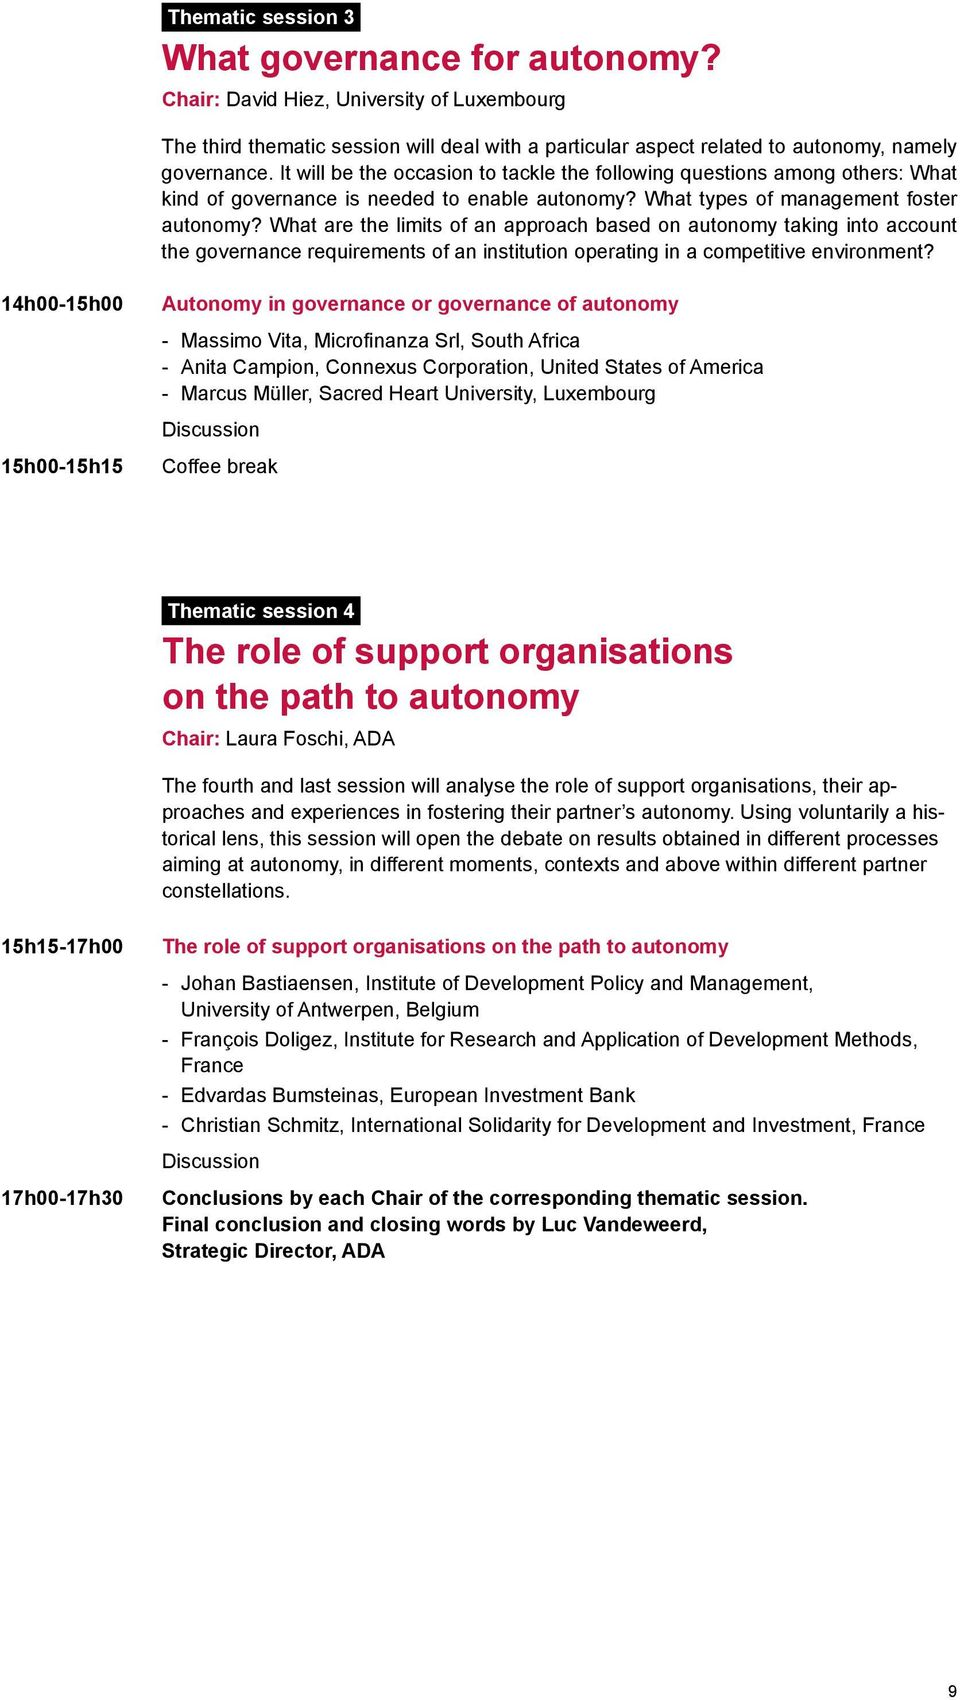 What are the limits of an approach based on autonomy taking into account the governance requirements of an institution operating in a competitive environment?